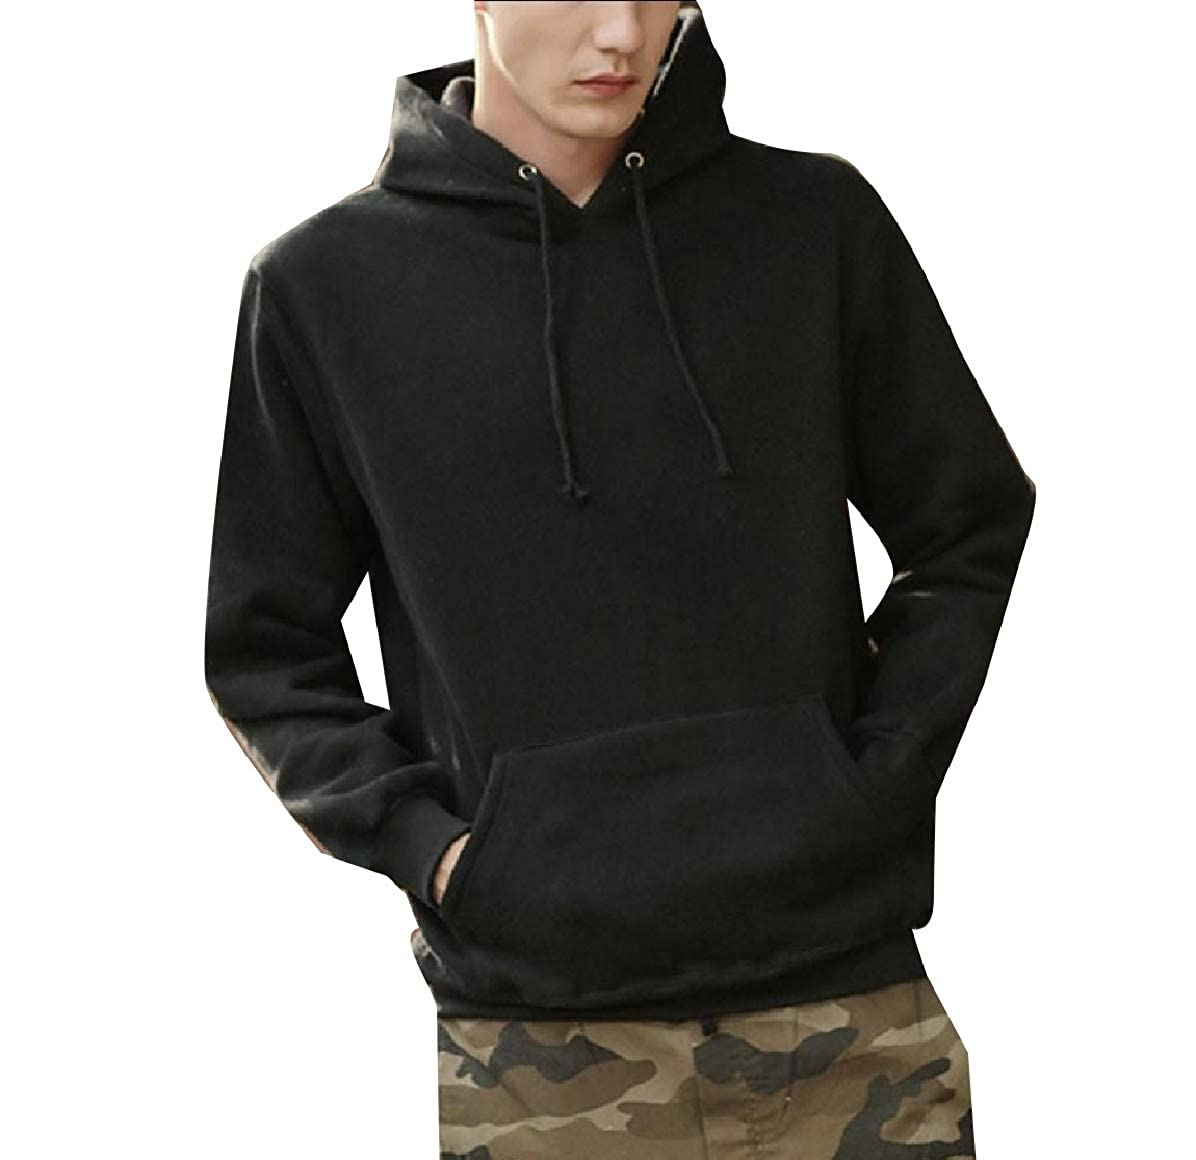 Mfasica Mens Hood Relaxed Fit Unisex Pure Color Fleece Pockets Pullover